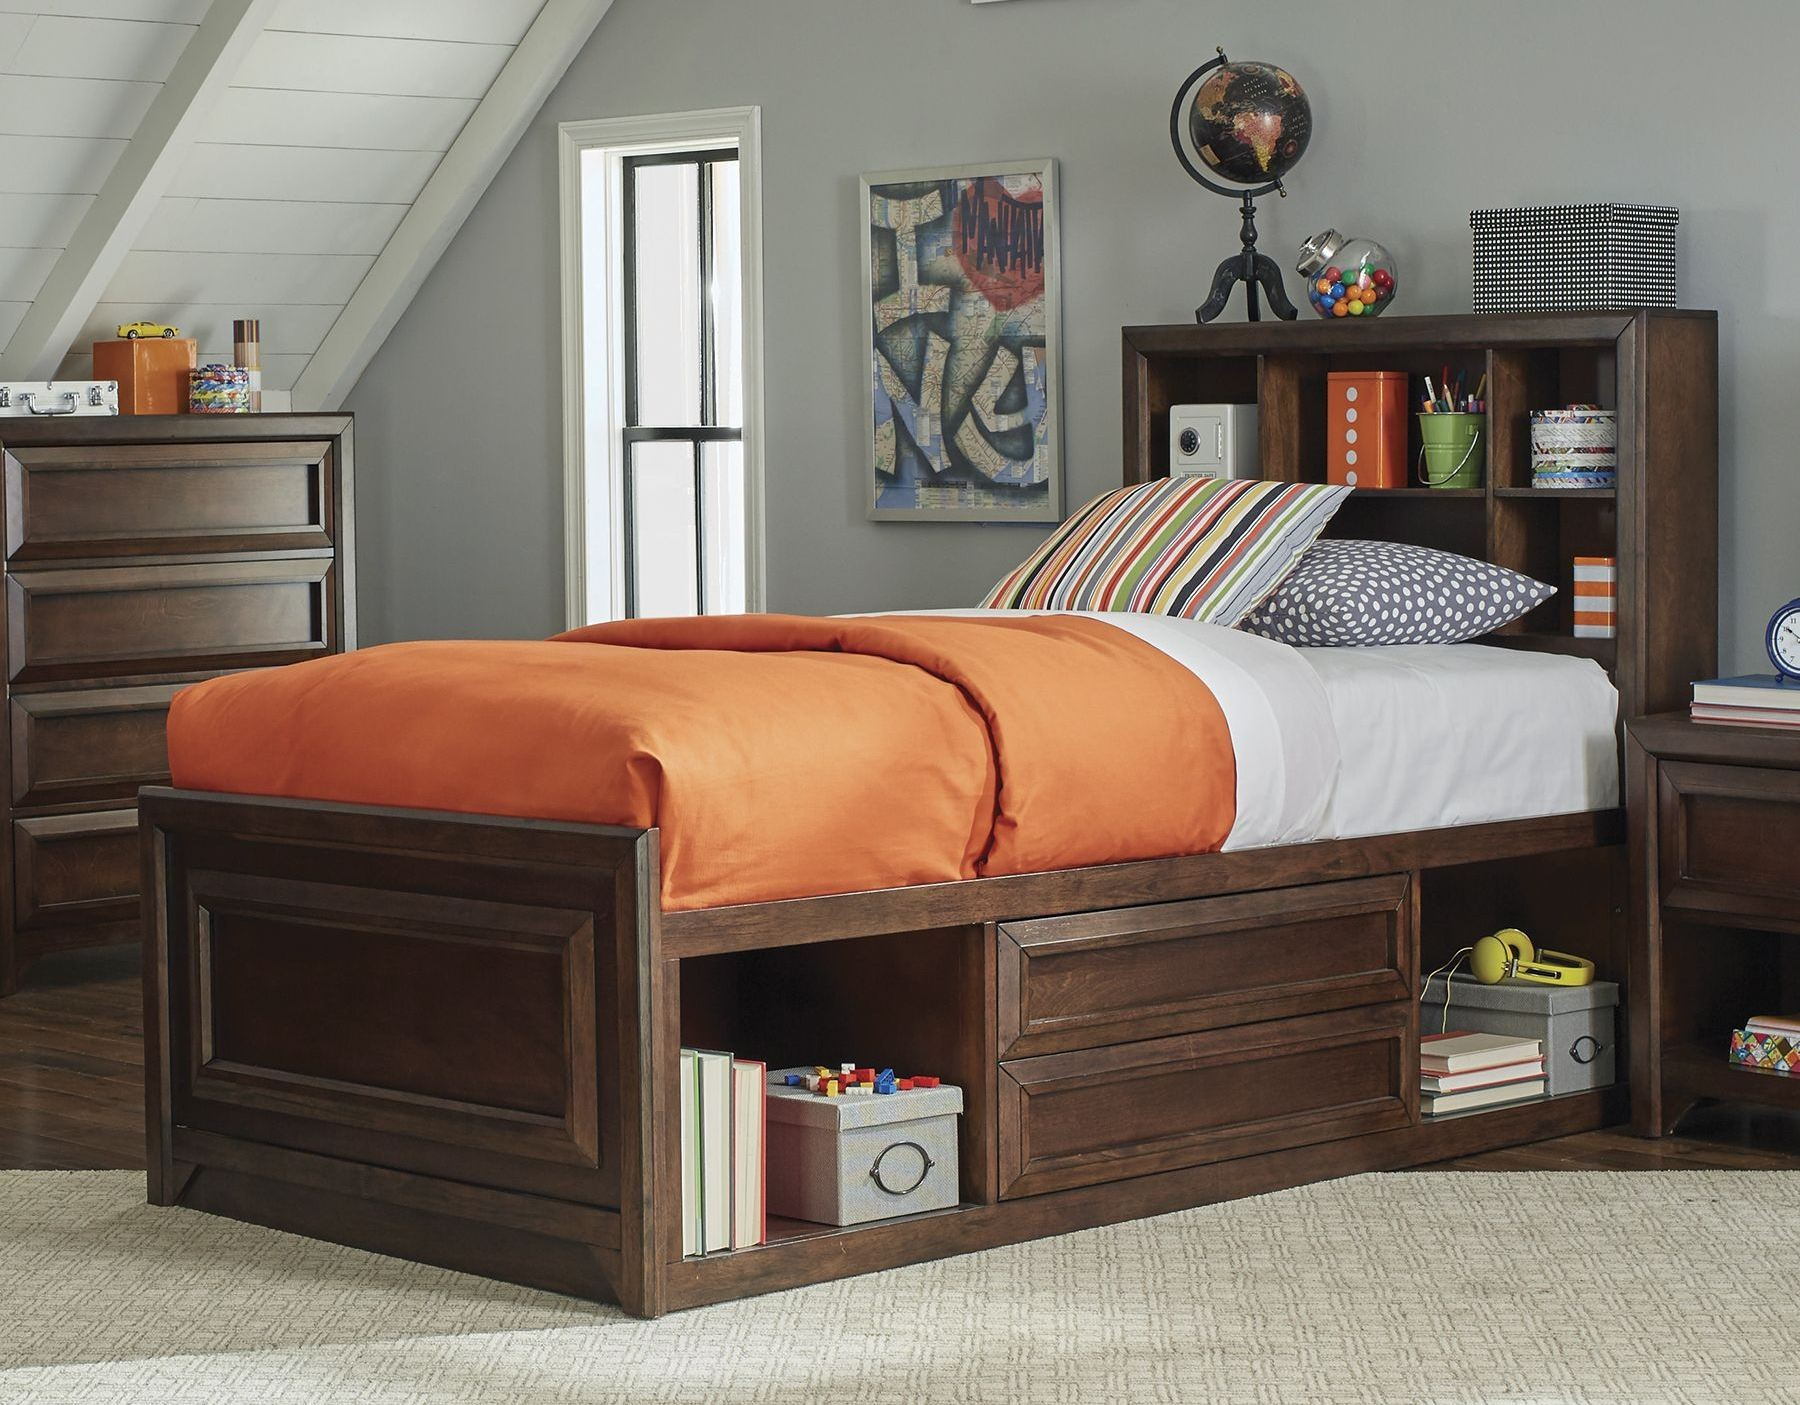 Greenough maple oak storage panel bedroom set 400820t - Youth bedroom furniture with storage ...